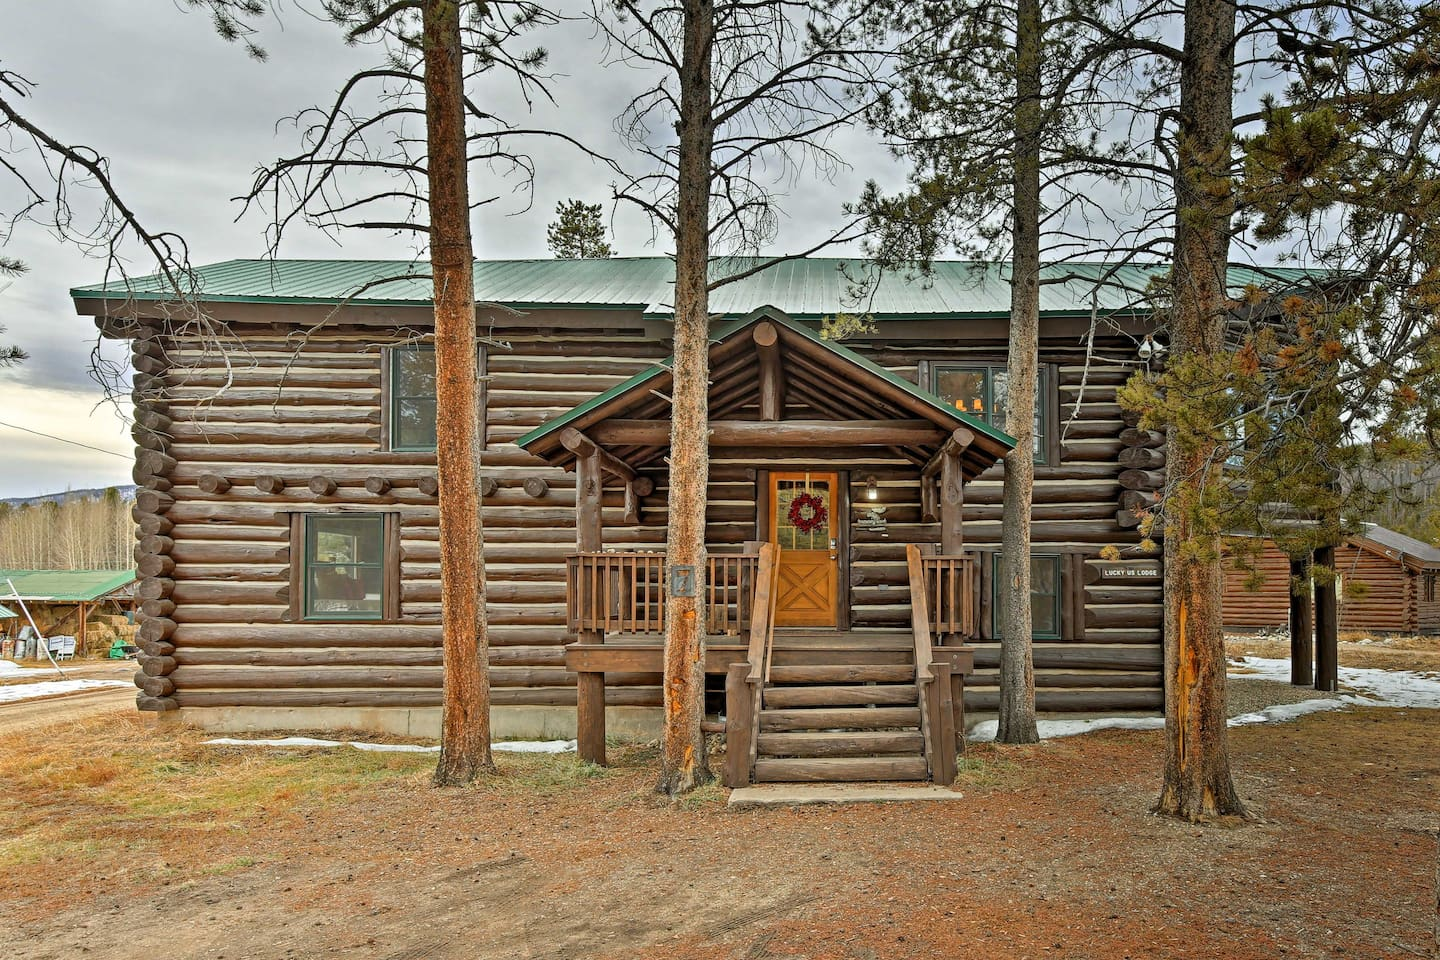 Don't hesitate to book 'Lucky Us Lodge' - a vacation rental in Grand Lake.